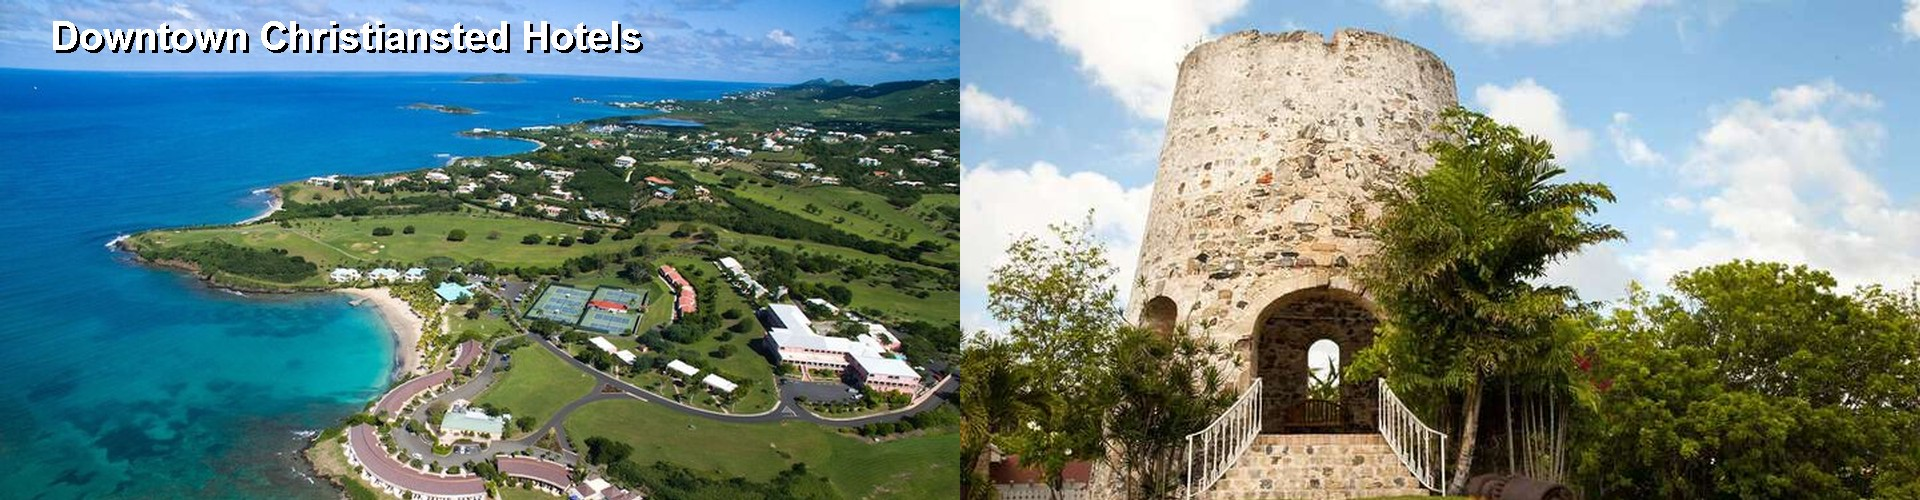 5 Best Hotels near Downtown Christiansted